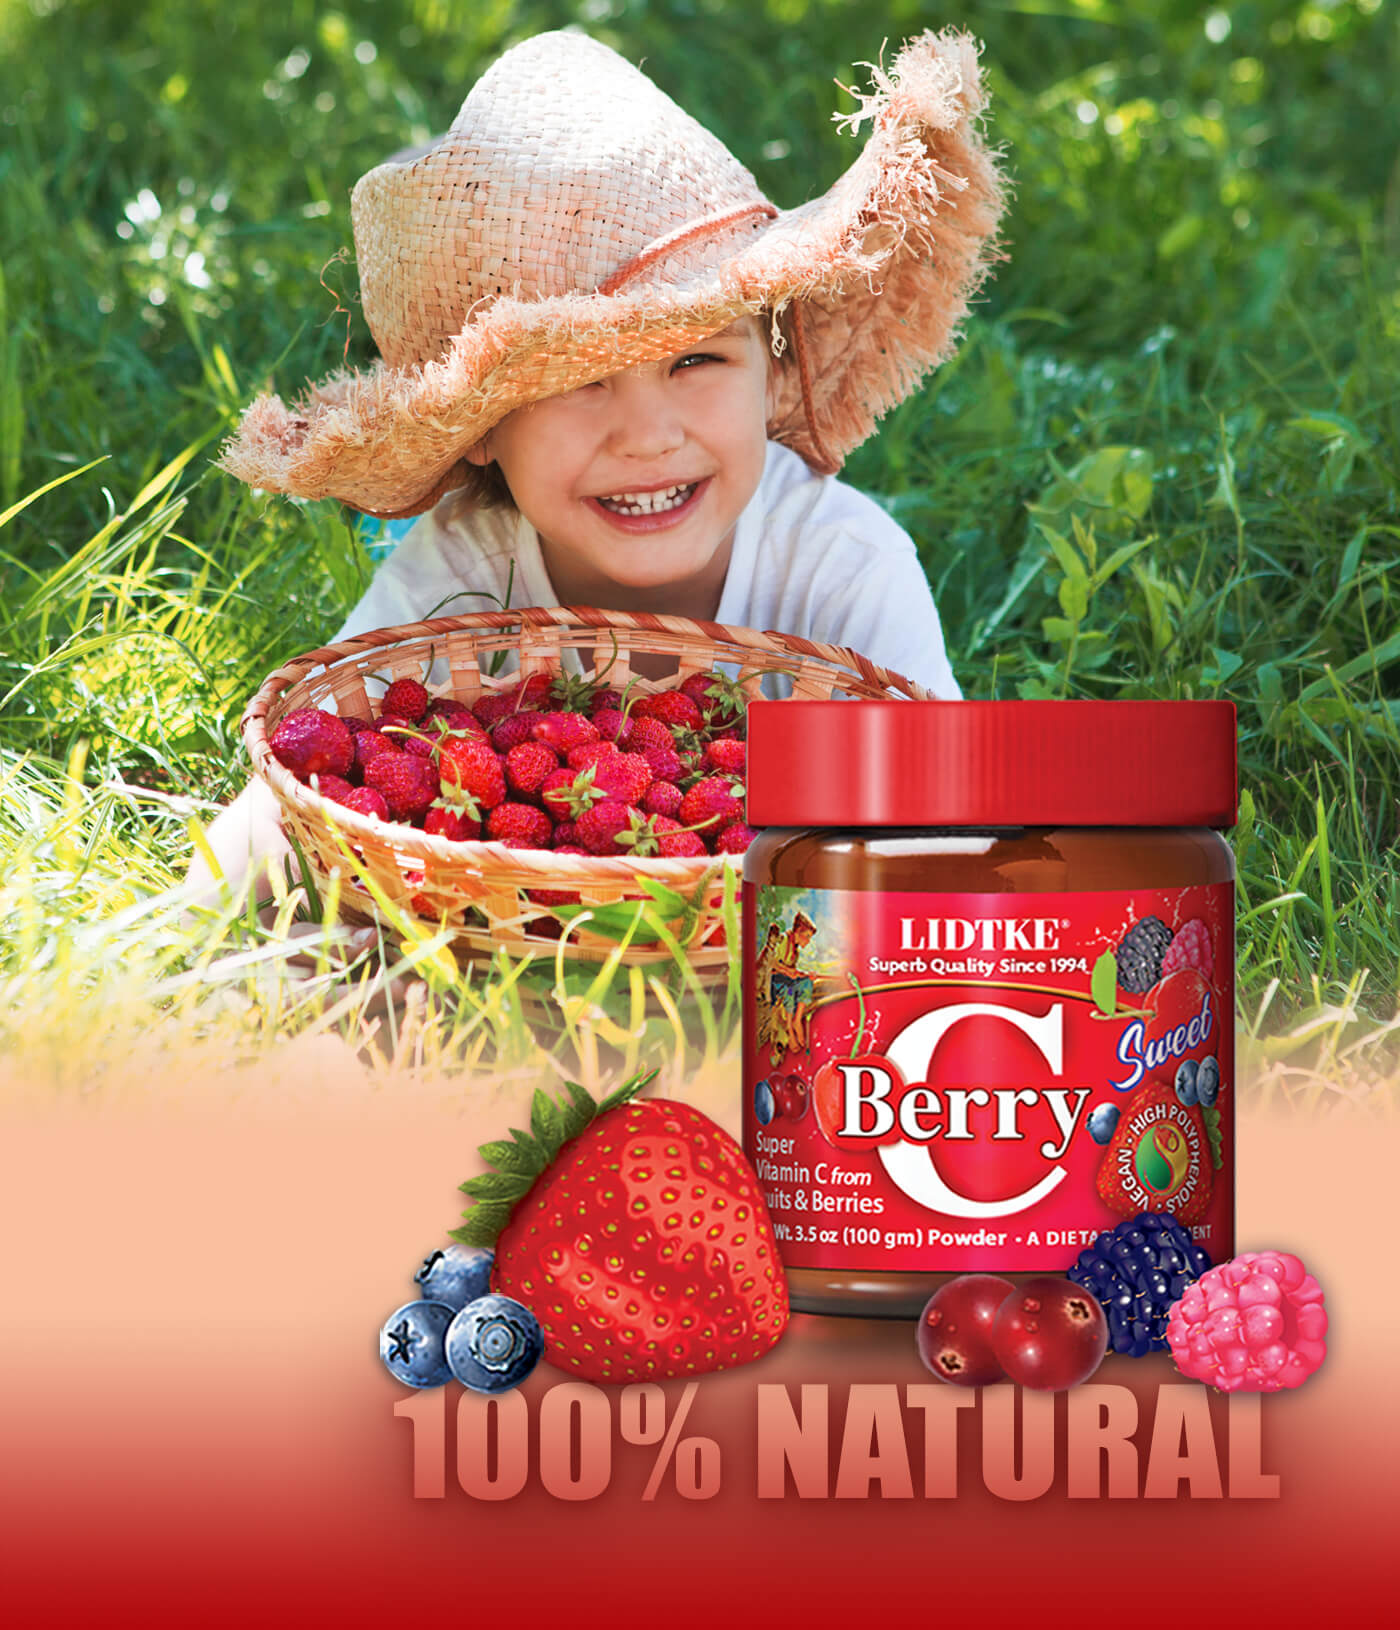 Happy child with big straw hat and basket of fresh strawberries in natural grass setting with 100% natural Berry C Sweet jar.